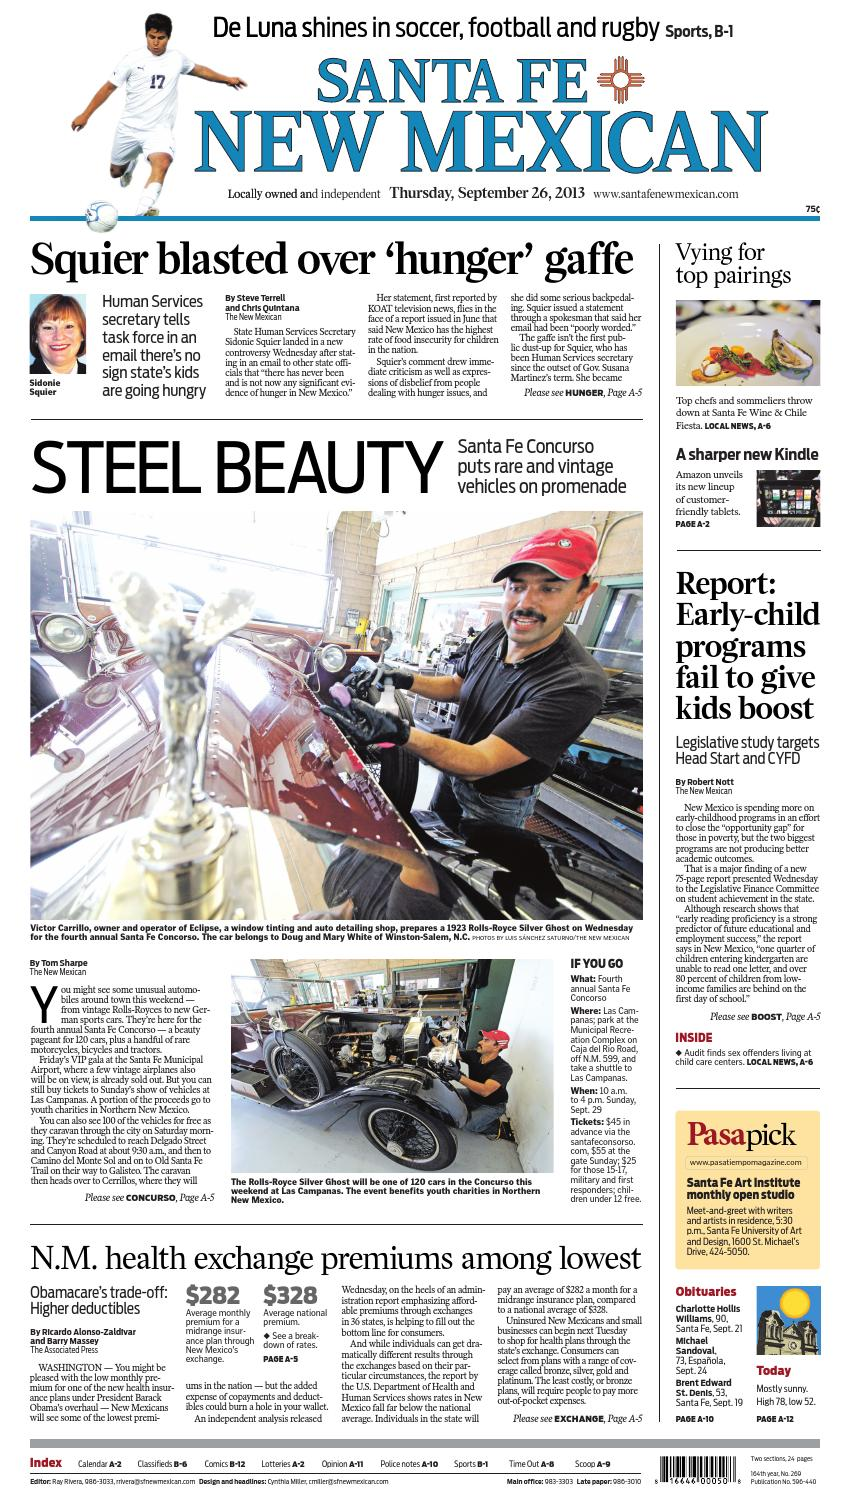 Santa fe new mexican, sept 26, 2013 by The New Mexican - issuu